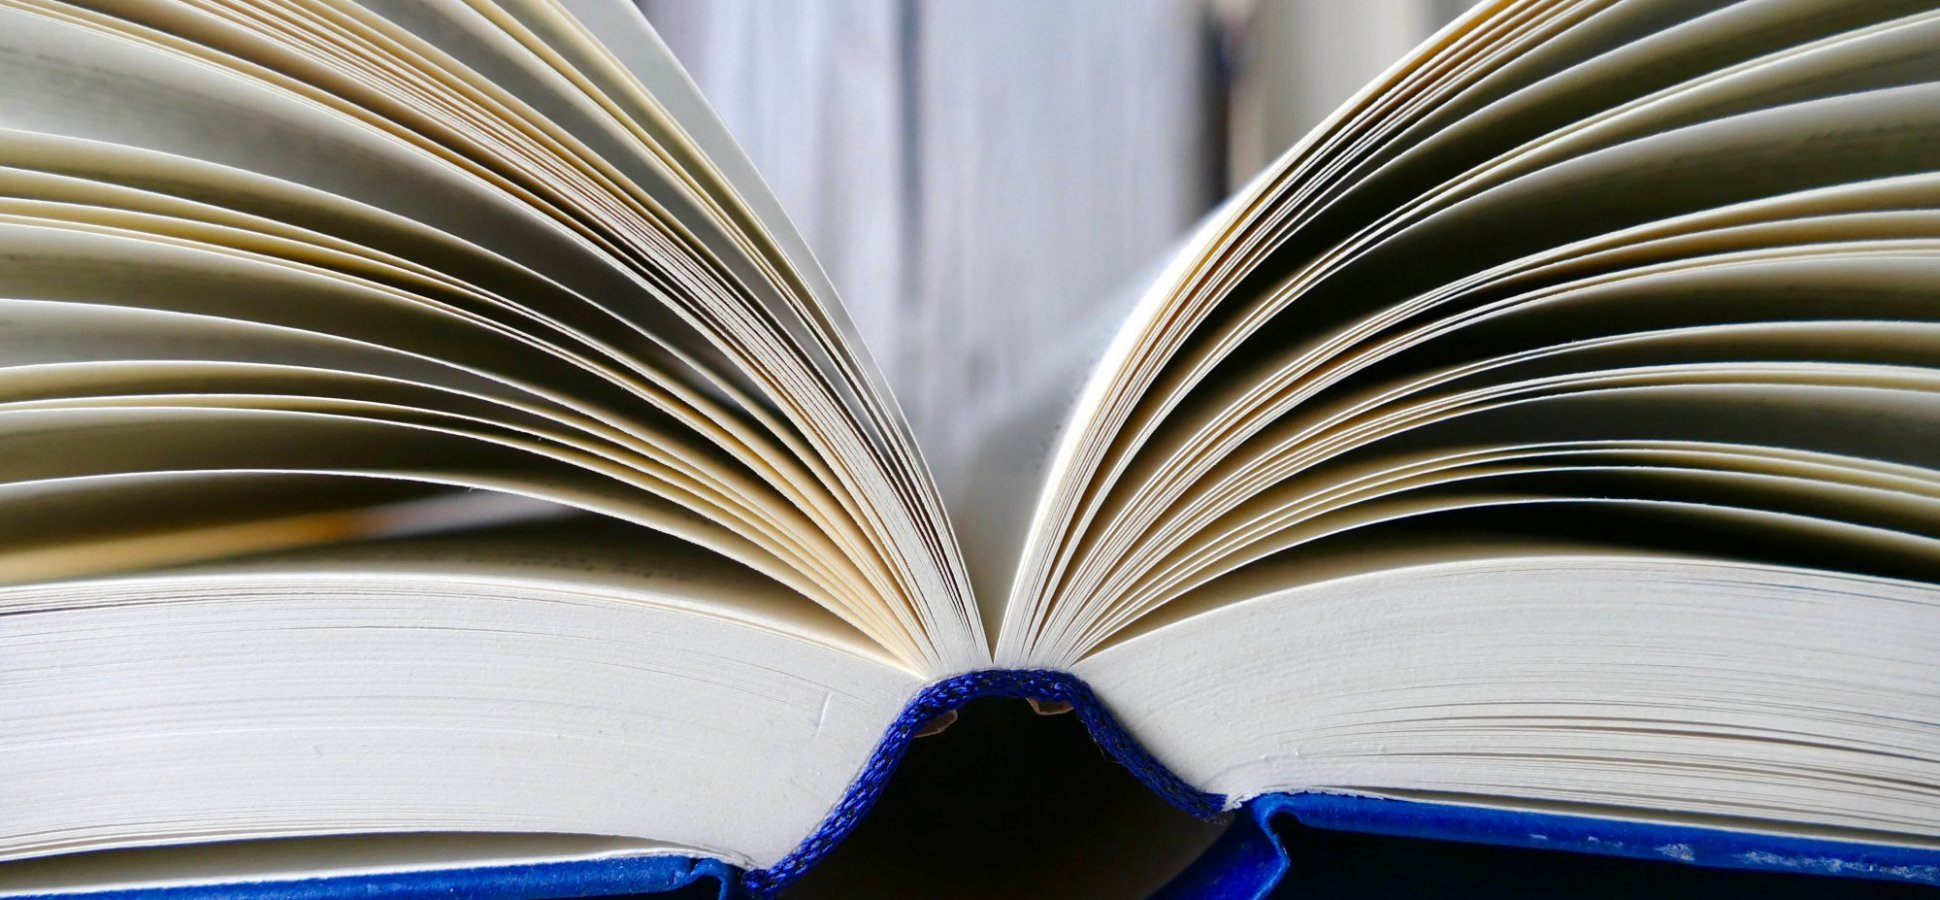 Want to Be a Better Boss? Read Any of the 8 Books the Smartest Leaders Have Already Read